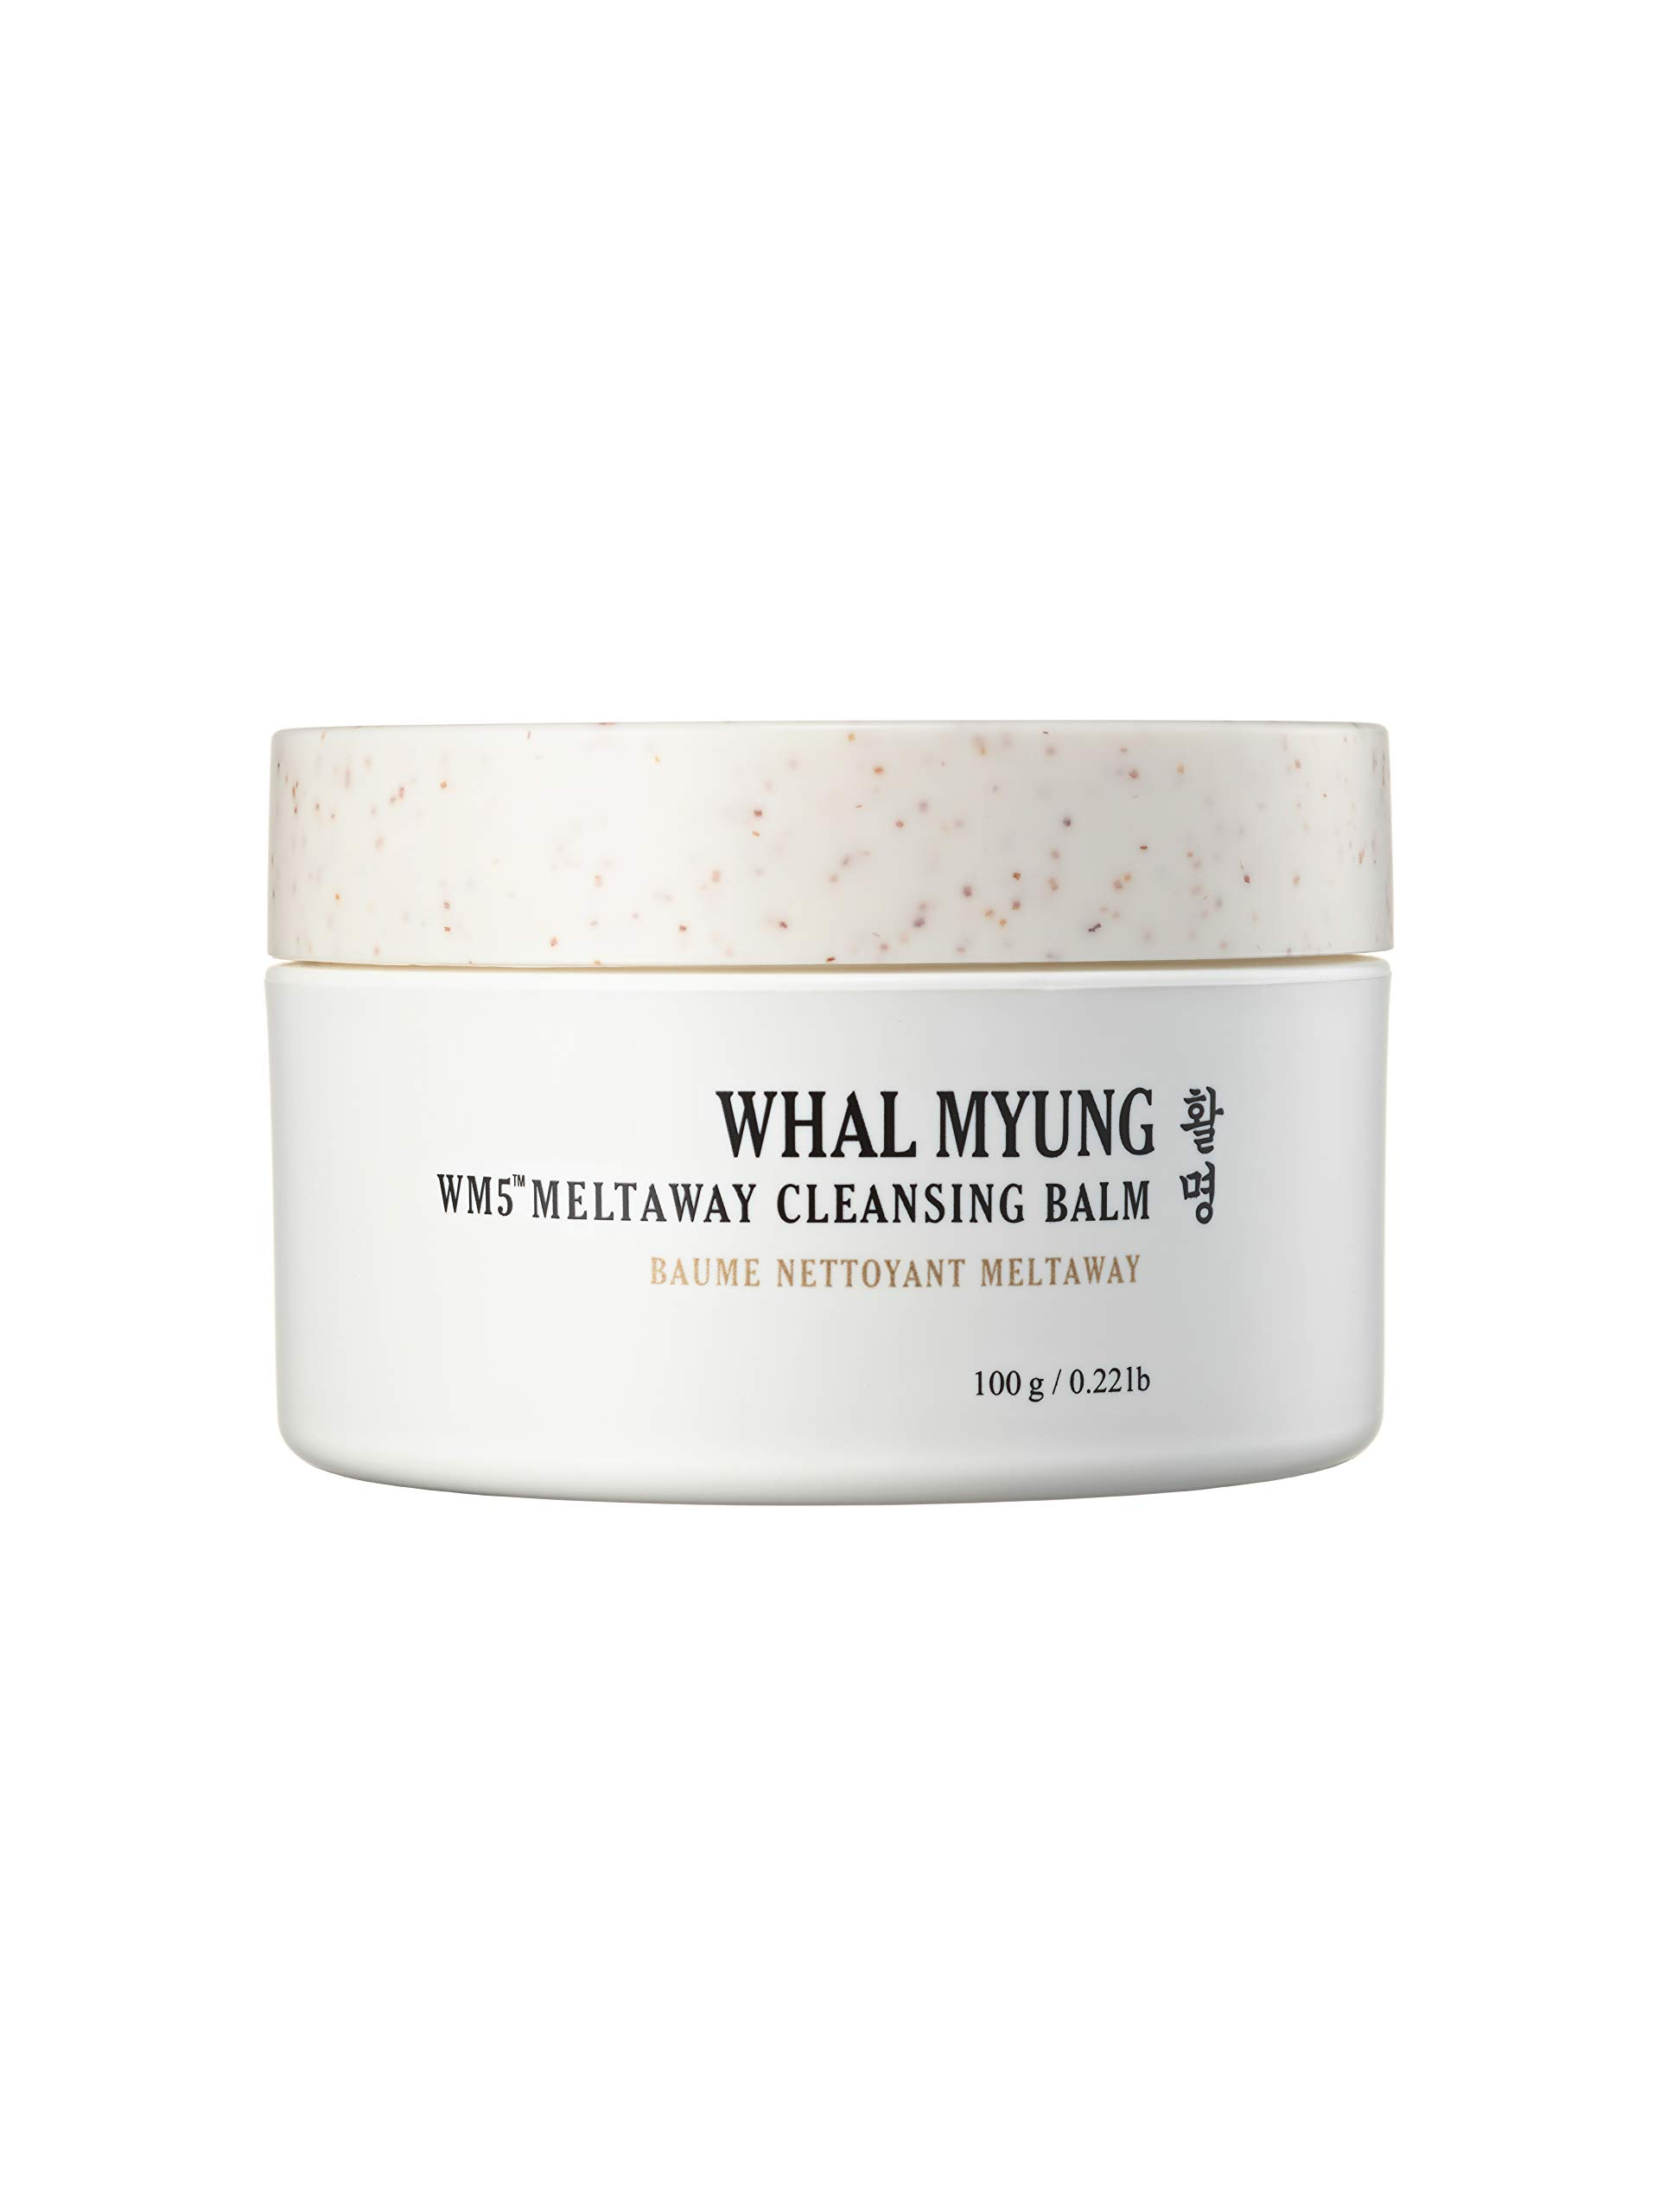 Whal Myung Meltaway Cleansing Balm, Makeup Remover for All Skin Type, Daily Korean Skin Care Clean Beauty, Natural Face Cleanser (0.22lb/100g)